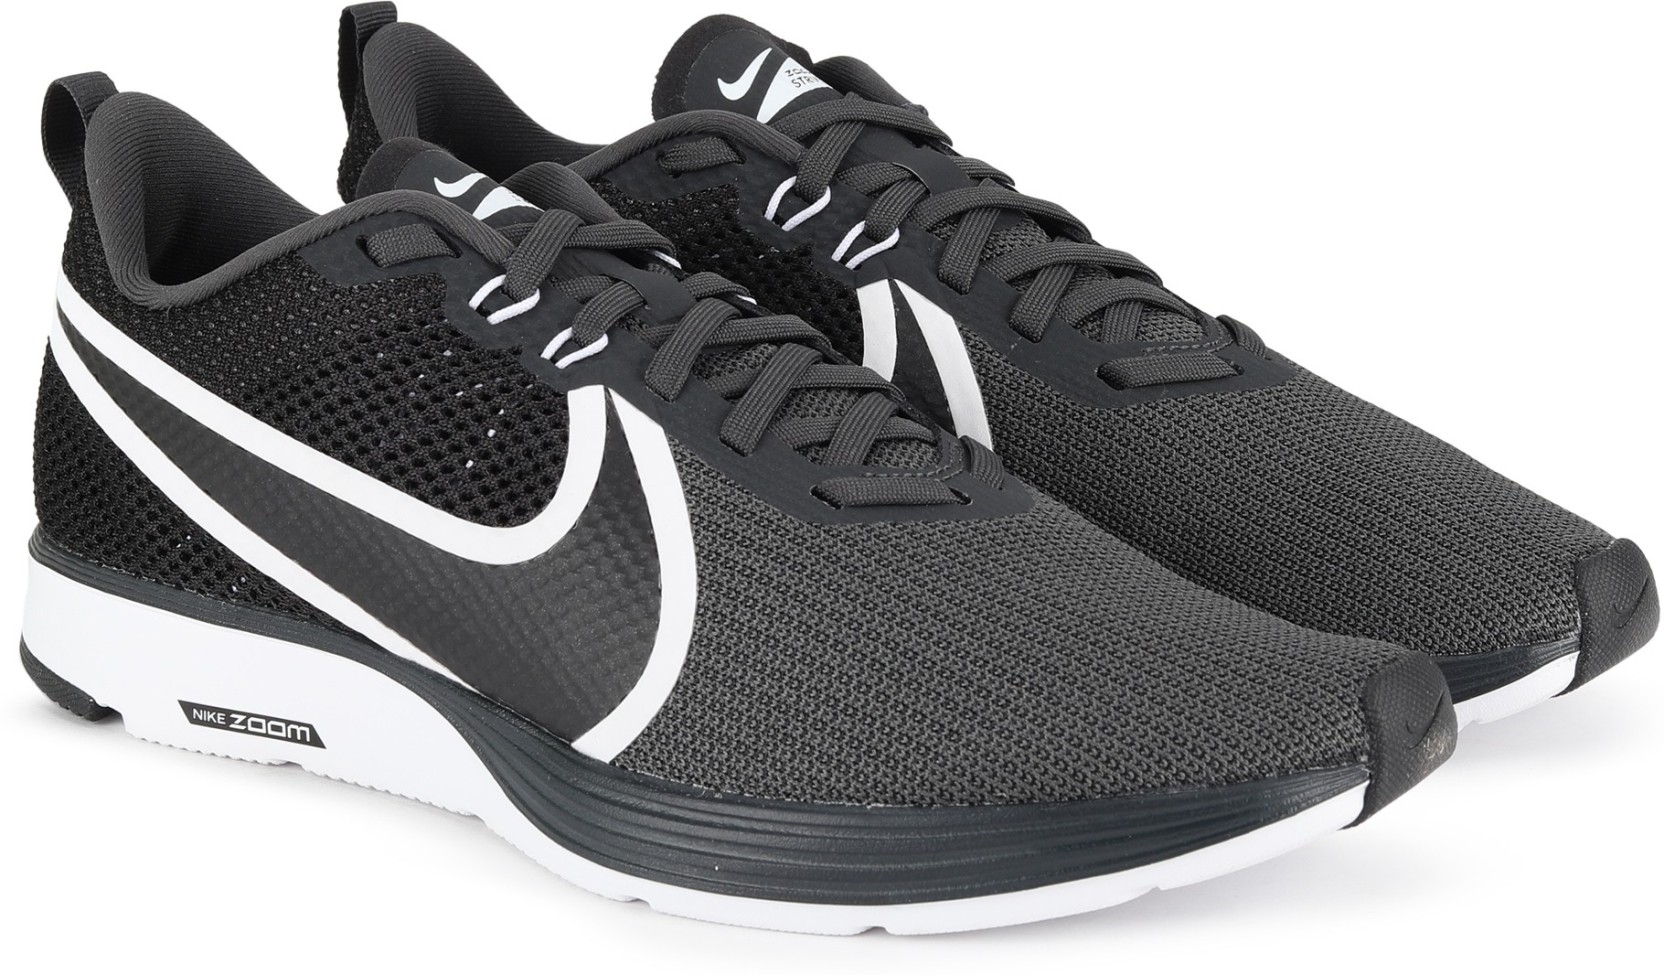 72830721663ef Nike ZOOM STRIKE 2 Running Shoes For Men - Buy Nike ZOOM STRIKE 2 ...